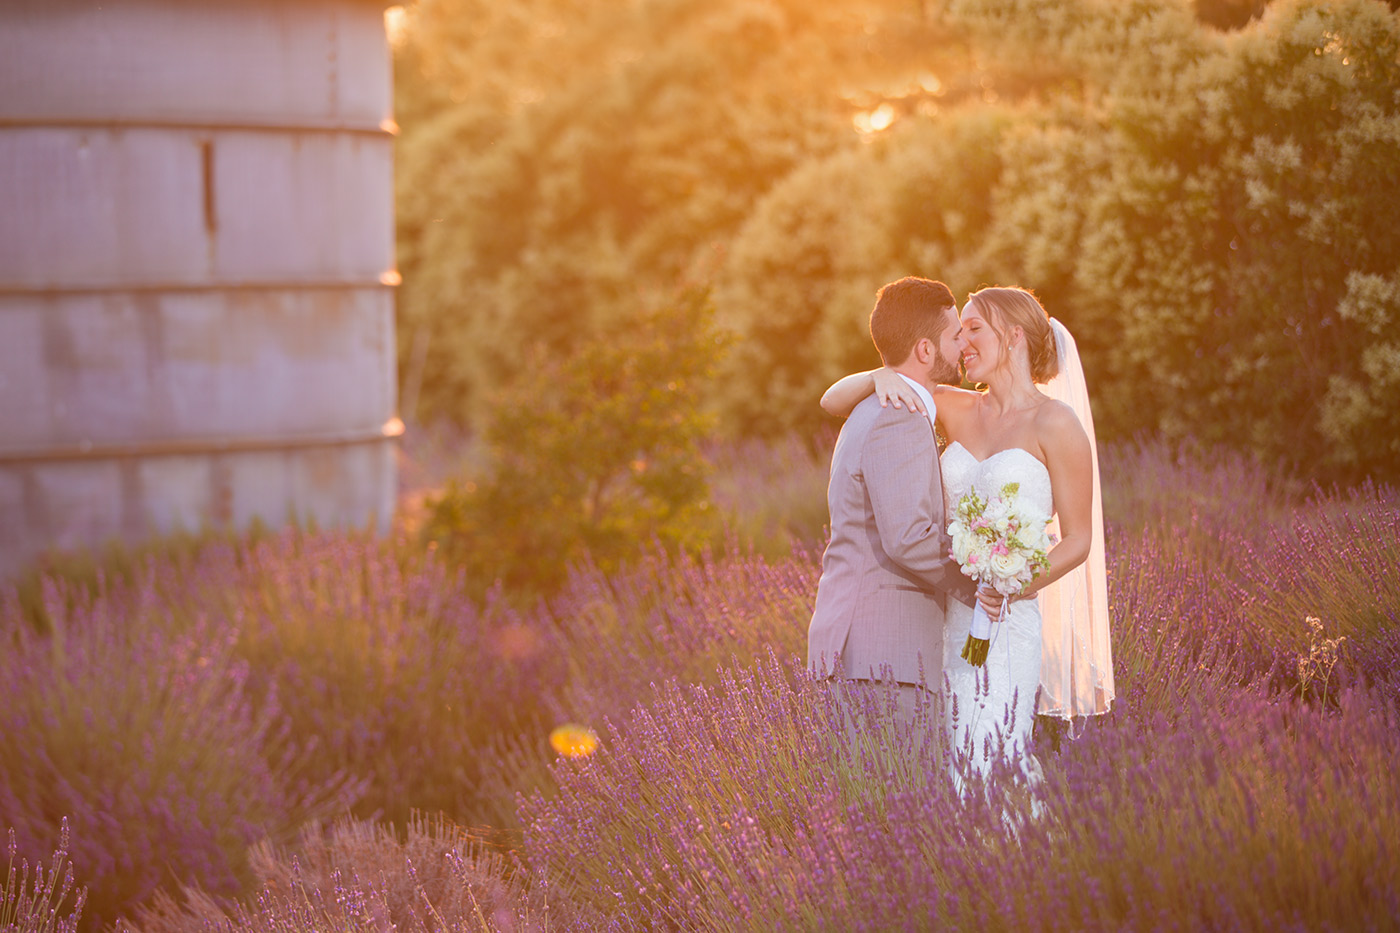 Pageo Lavender Farm Wedding Photo: Bride and groom take photos at sunset in the lavender fields at Pageo Lavender Farm